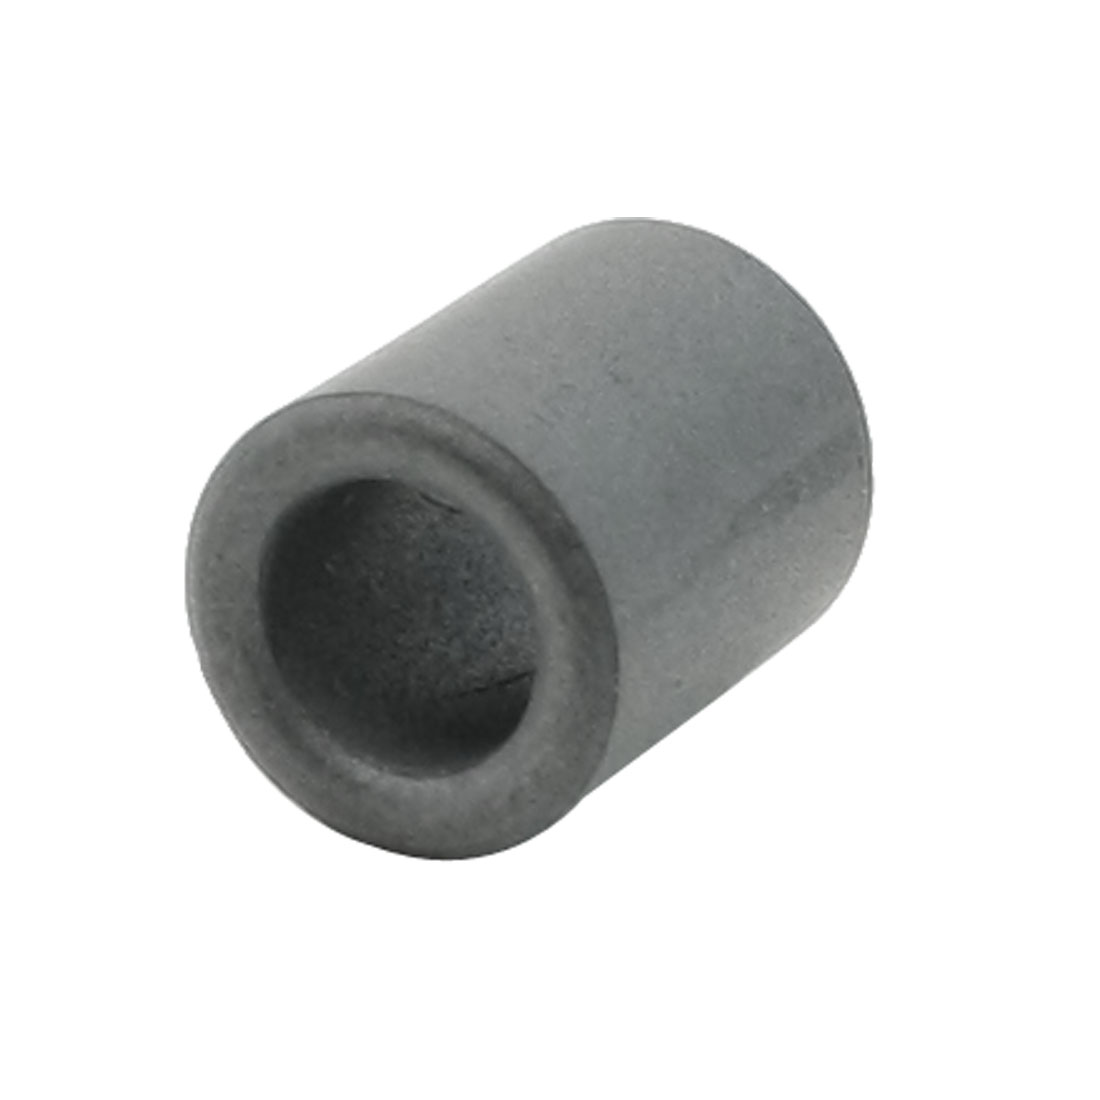 Magnetic Ferrite Ring Core Tube Toroid 12 X 7 X 15mm